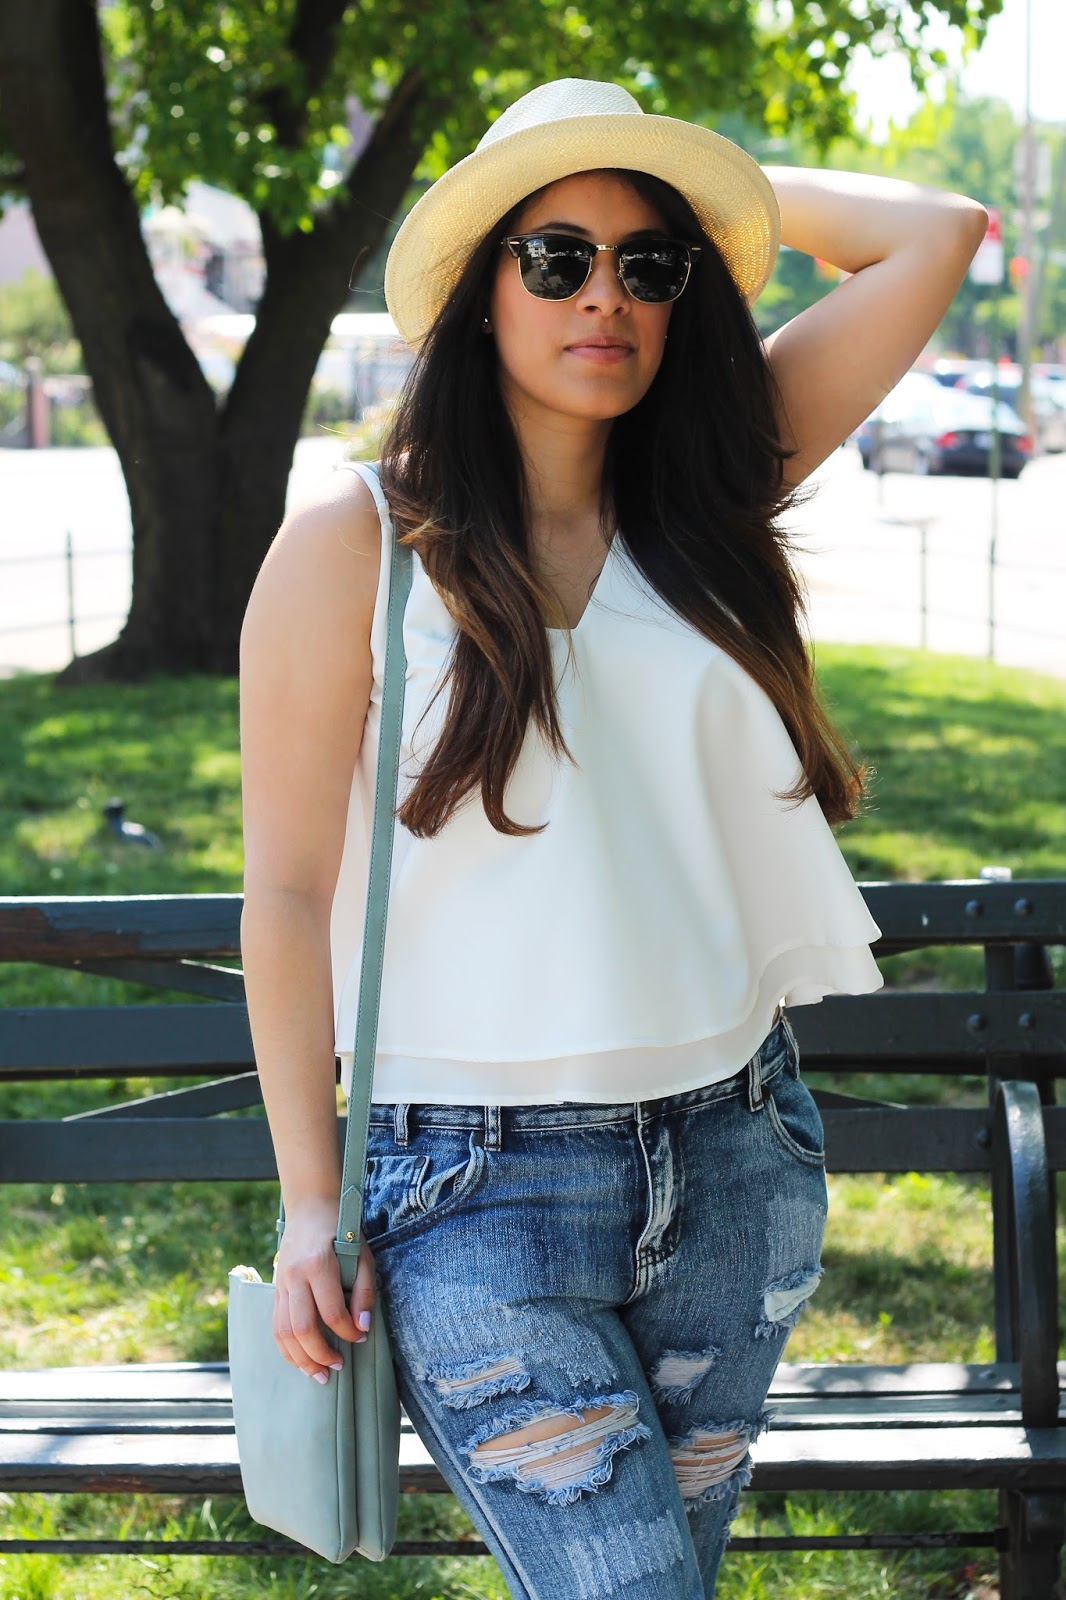 blogger, daniel wellington, distressed, distressed skinny jeans, espadrilles, fashion, kate spade, newyork, nude, oldnavy, panama hat, ray bans, raybans, shoptobi, skinny jeans, style, summer, summer style, tobi, wedges, ray bans clubmaster, sunglasses, white, blush, dress, summer dress, swing dress, lace up sandals, sandals, satchel, cross body, latina, watch, daniel wellington watch